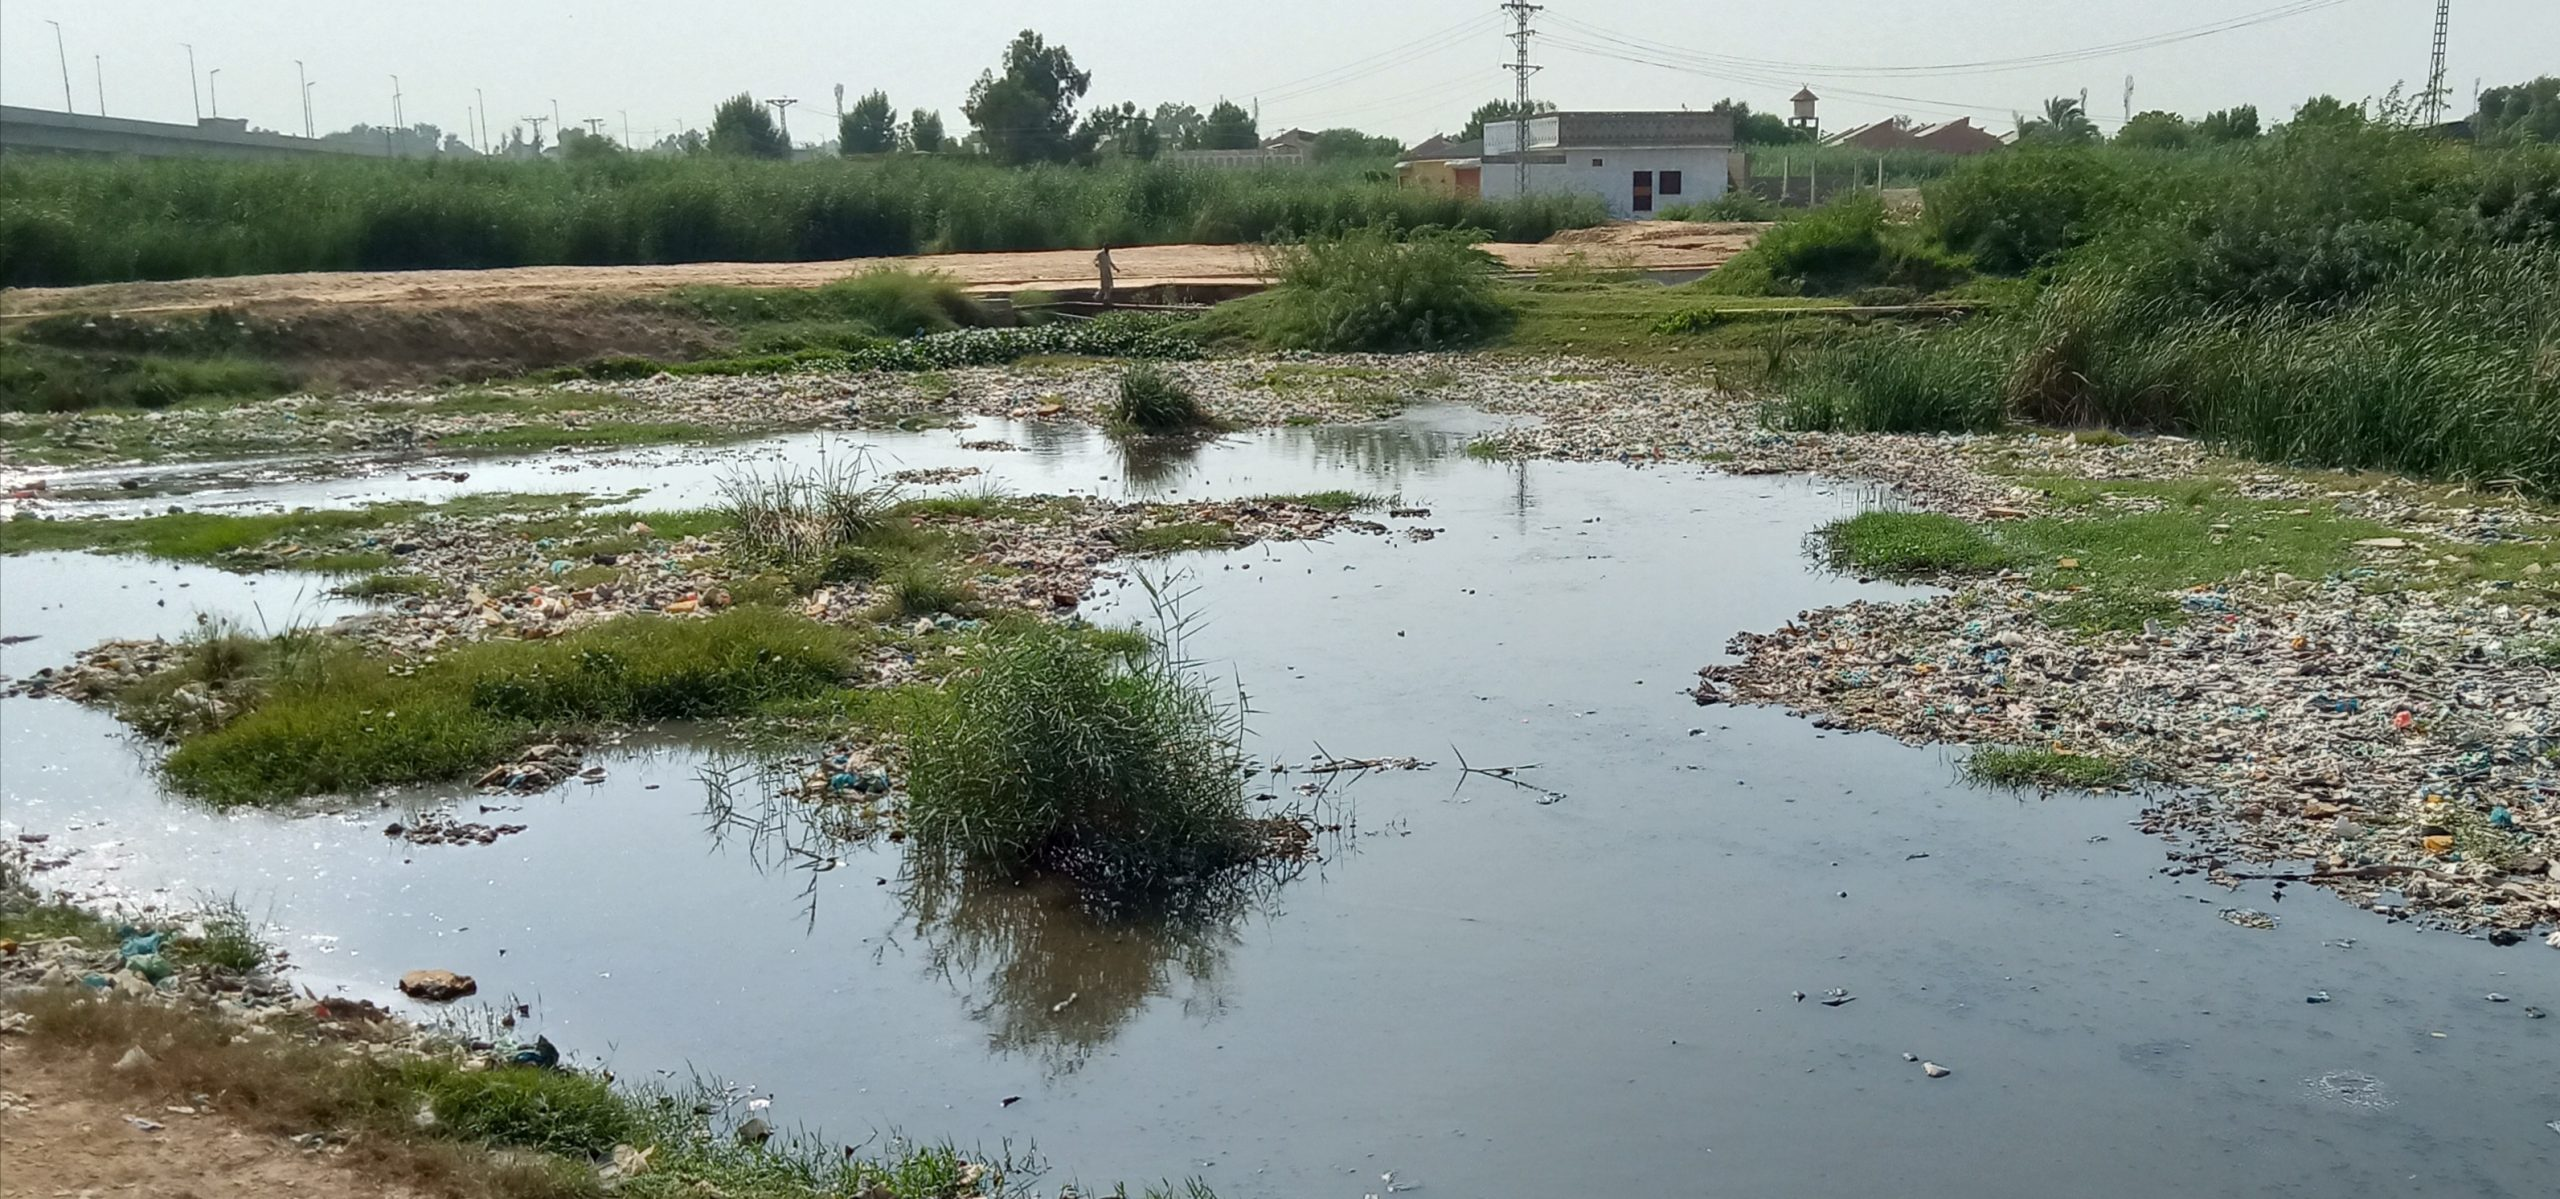 Water pollution continues posing threat to human life in Sindh- Sindh Courier-6